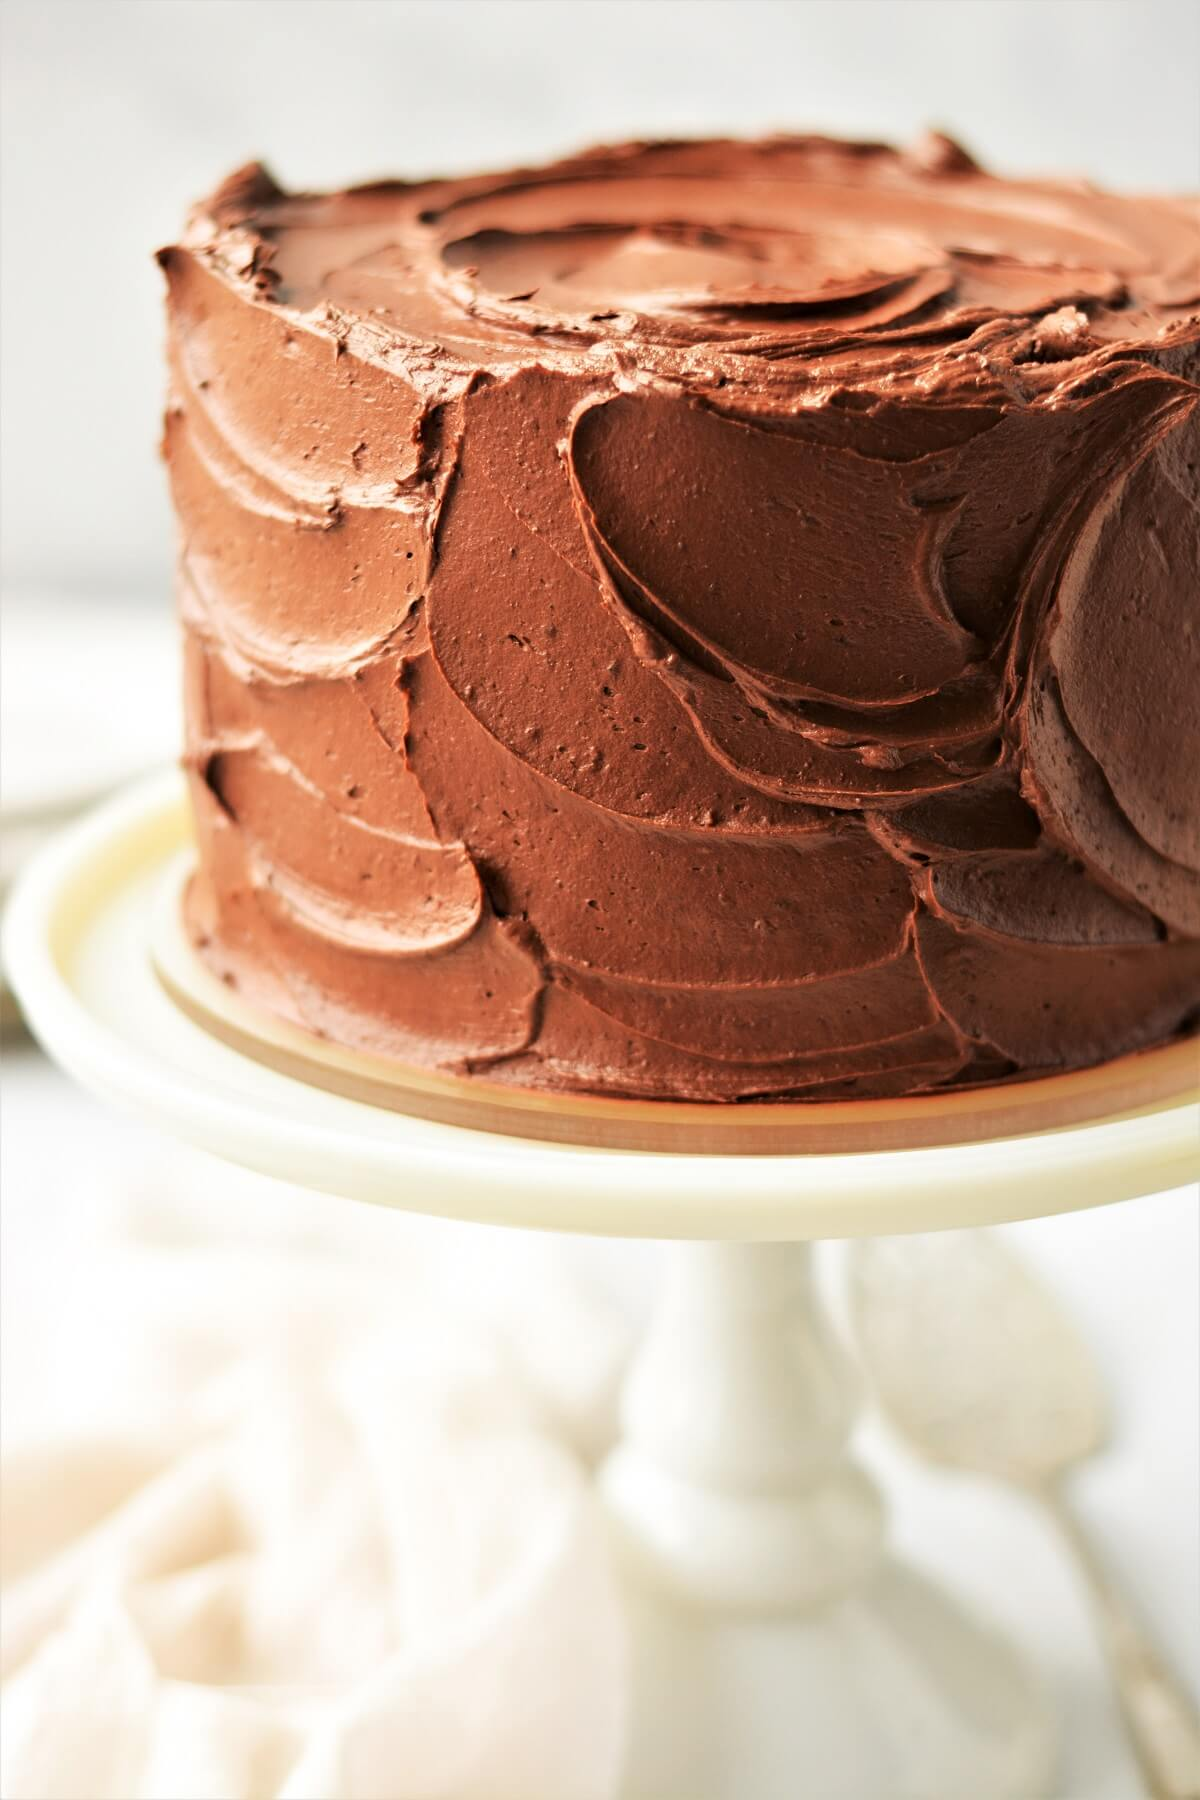 Closeup of chocolate buttercream on a layer cake.